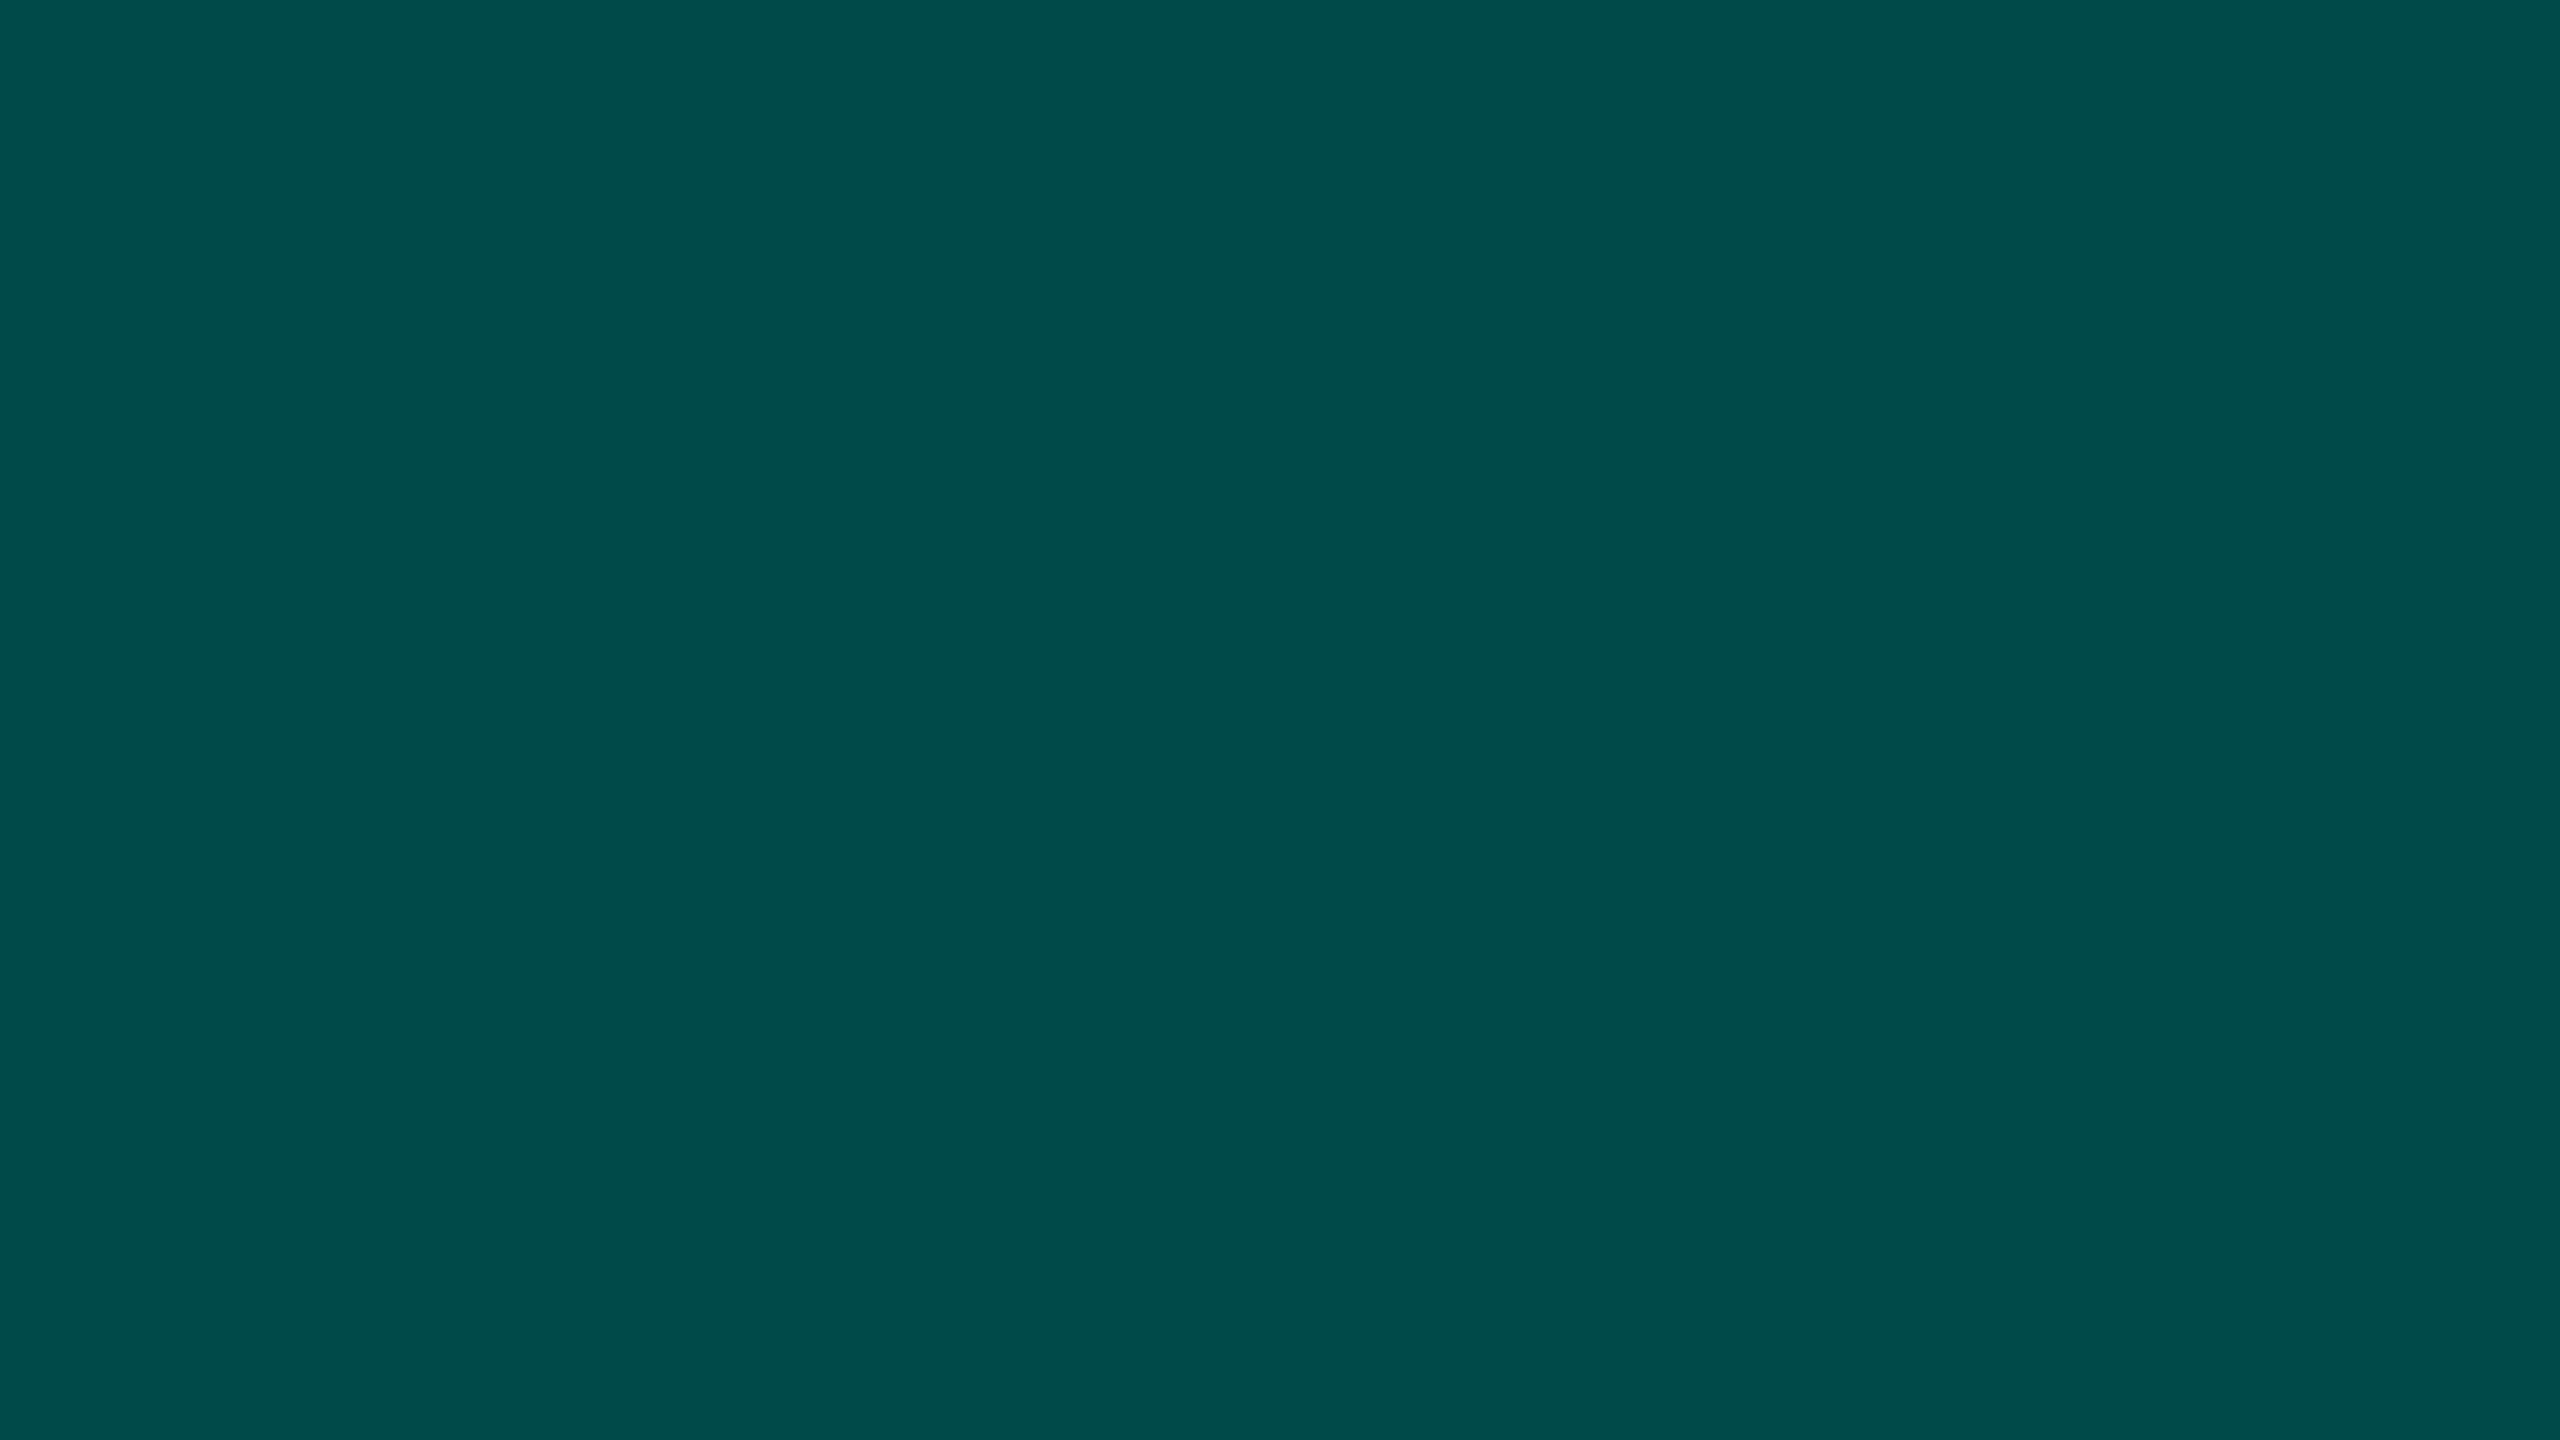 2560x1440 Deep Jungle Green Solid Color Background